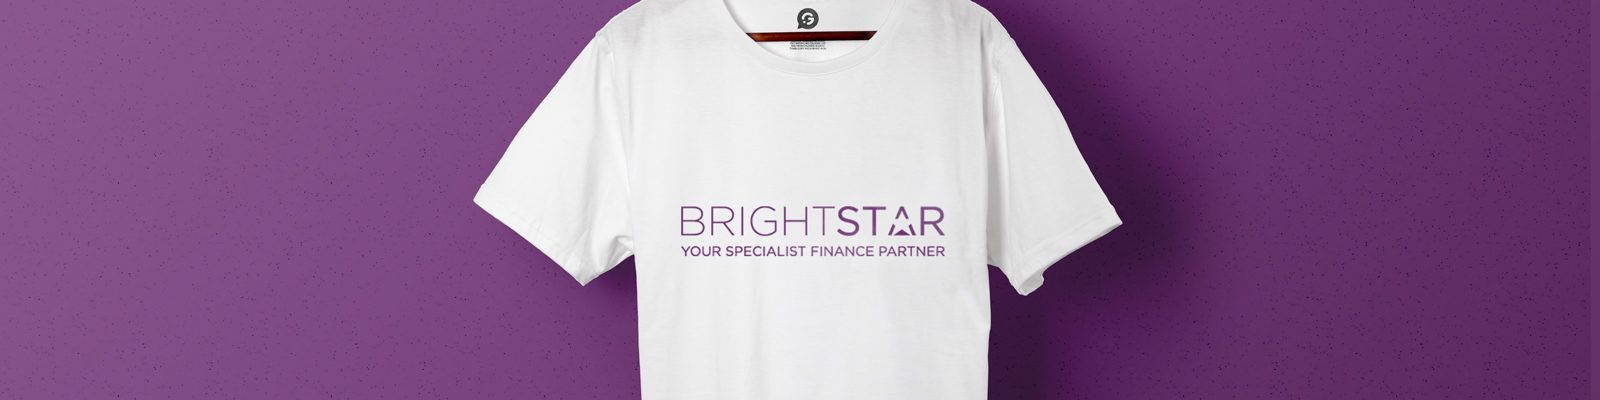 Printed Work Shirts for Bright Star Business Event - Header Image